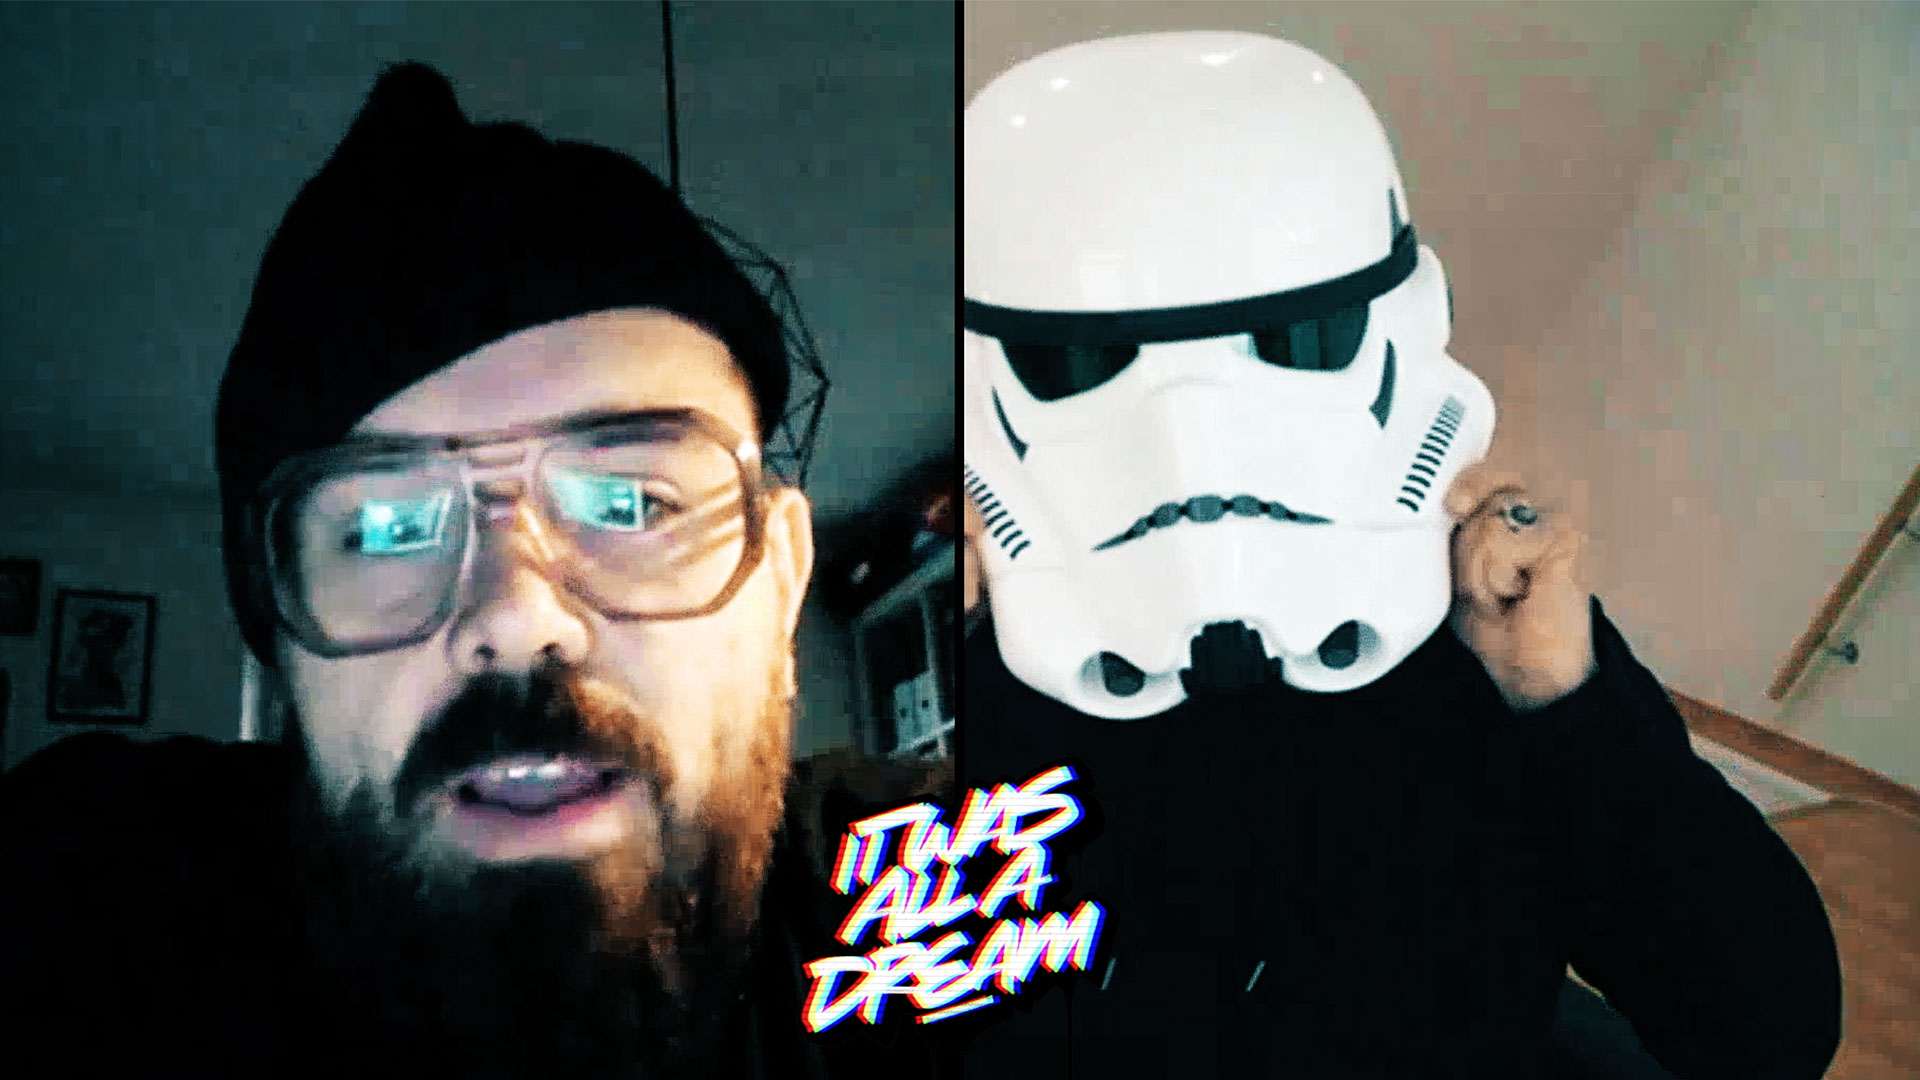 IT WAS ALL A DREAM Podcast Video YouTube